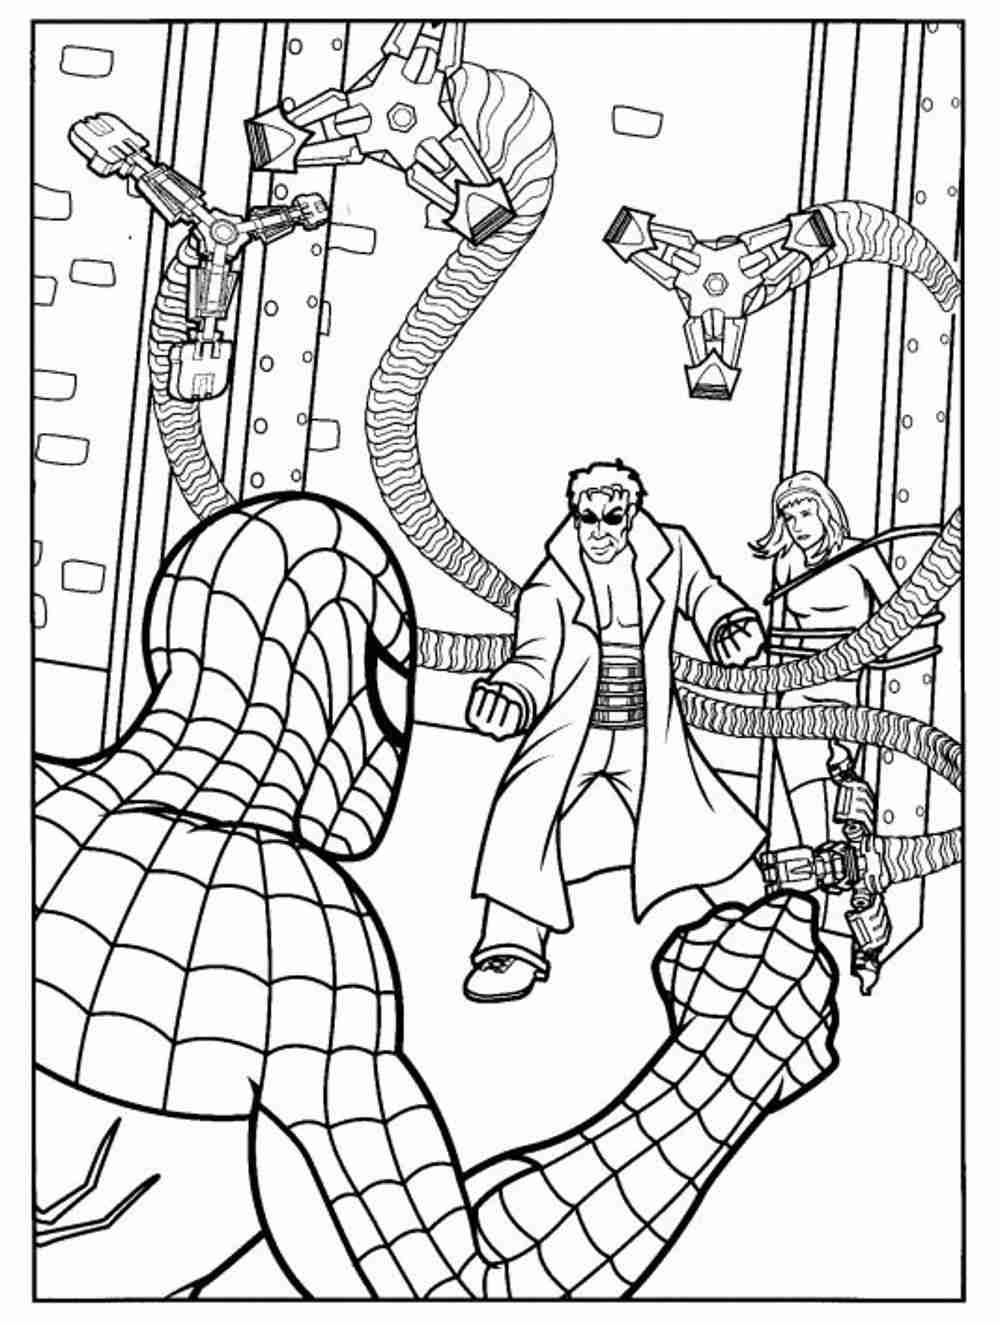 coloring pictures spiderman spiderman coloring pages coloring pictures spiderman